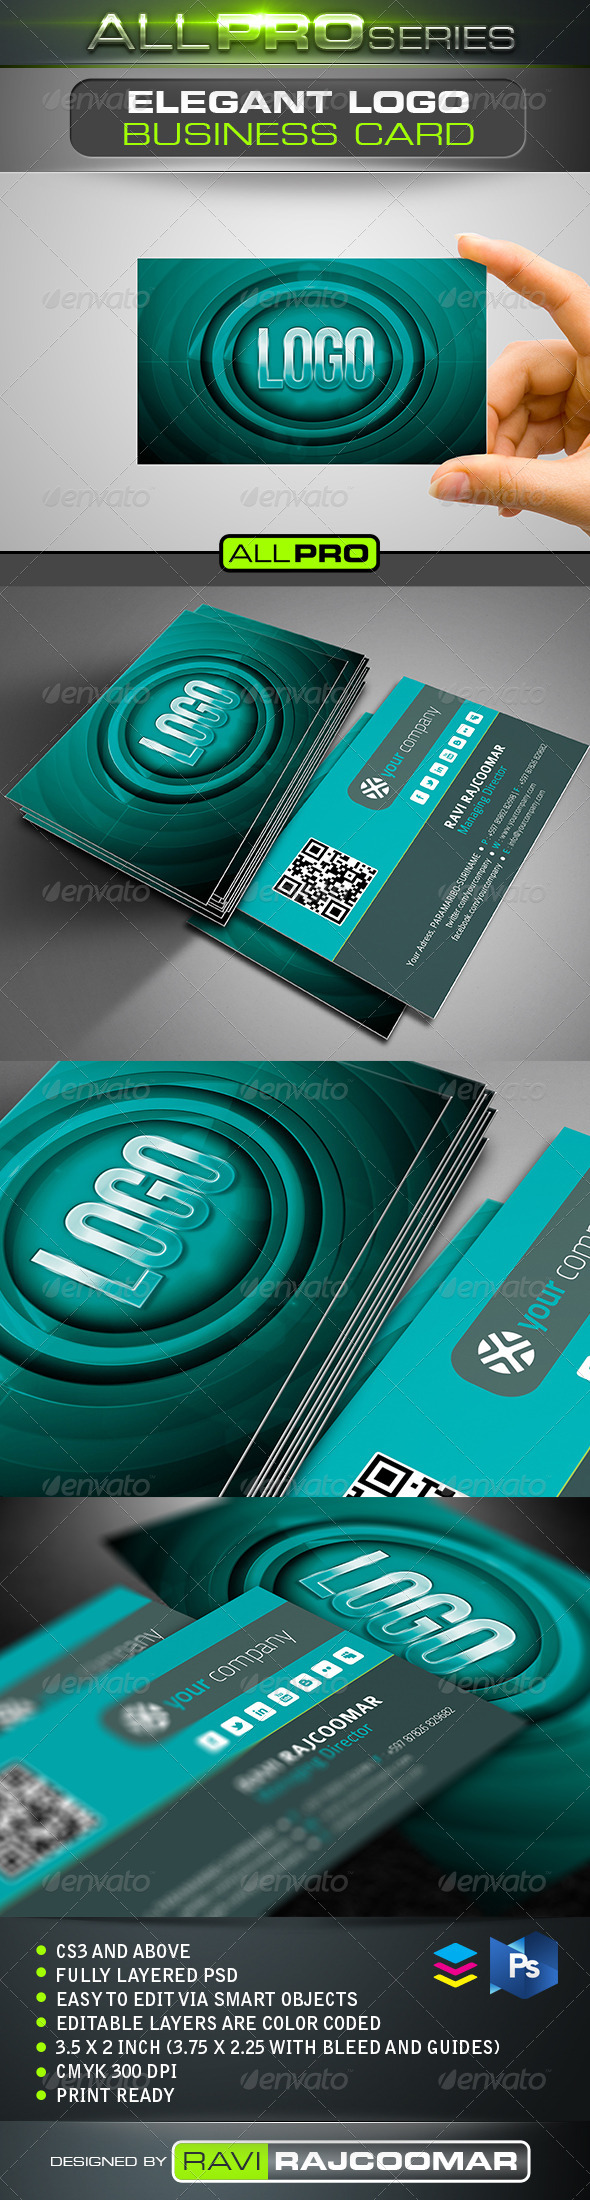 Elegant Logo Business Card - Business Cards Print Templates